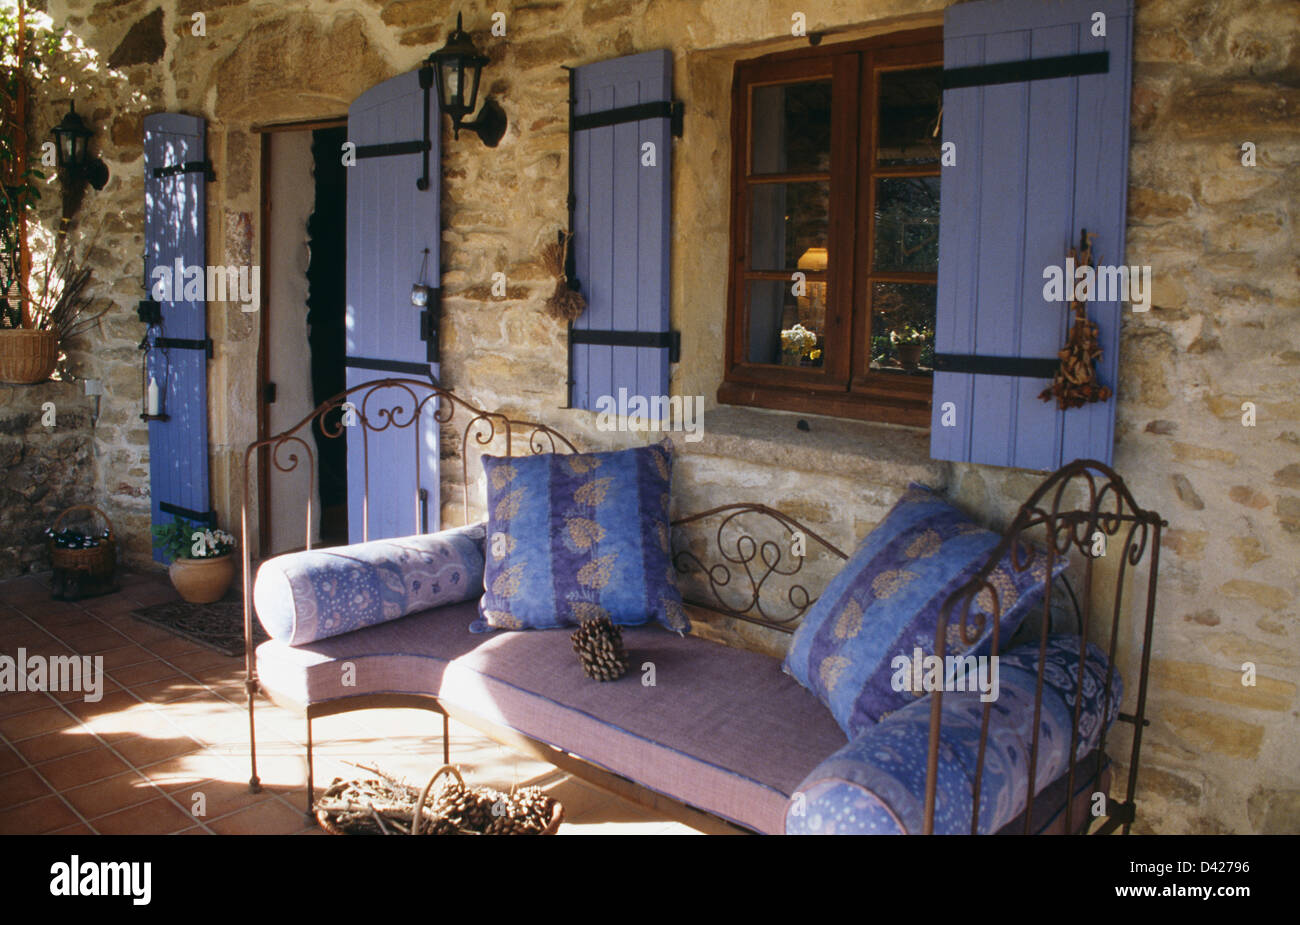 Blue Cushions On Wrought Iron Daybed Below Window With Blue Shutters